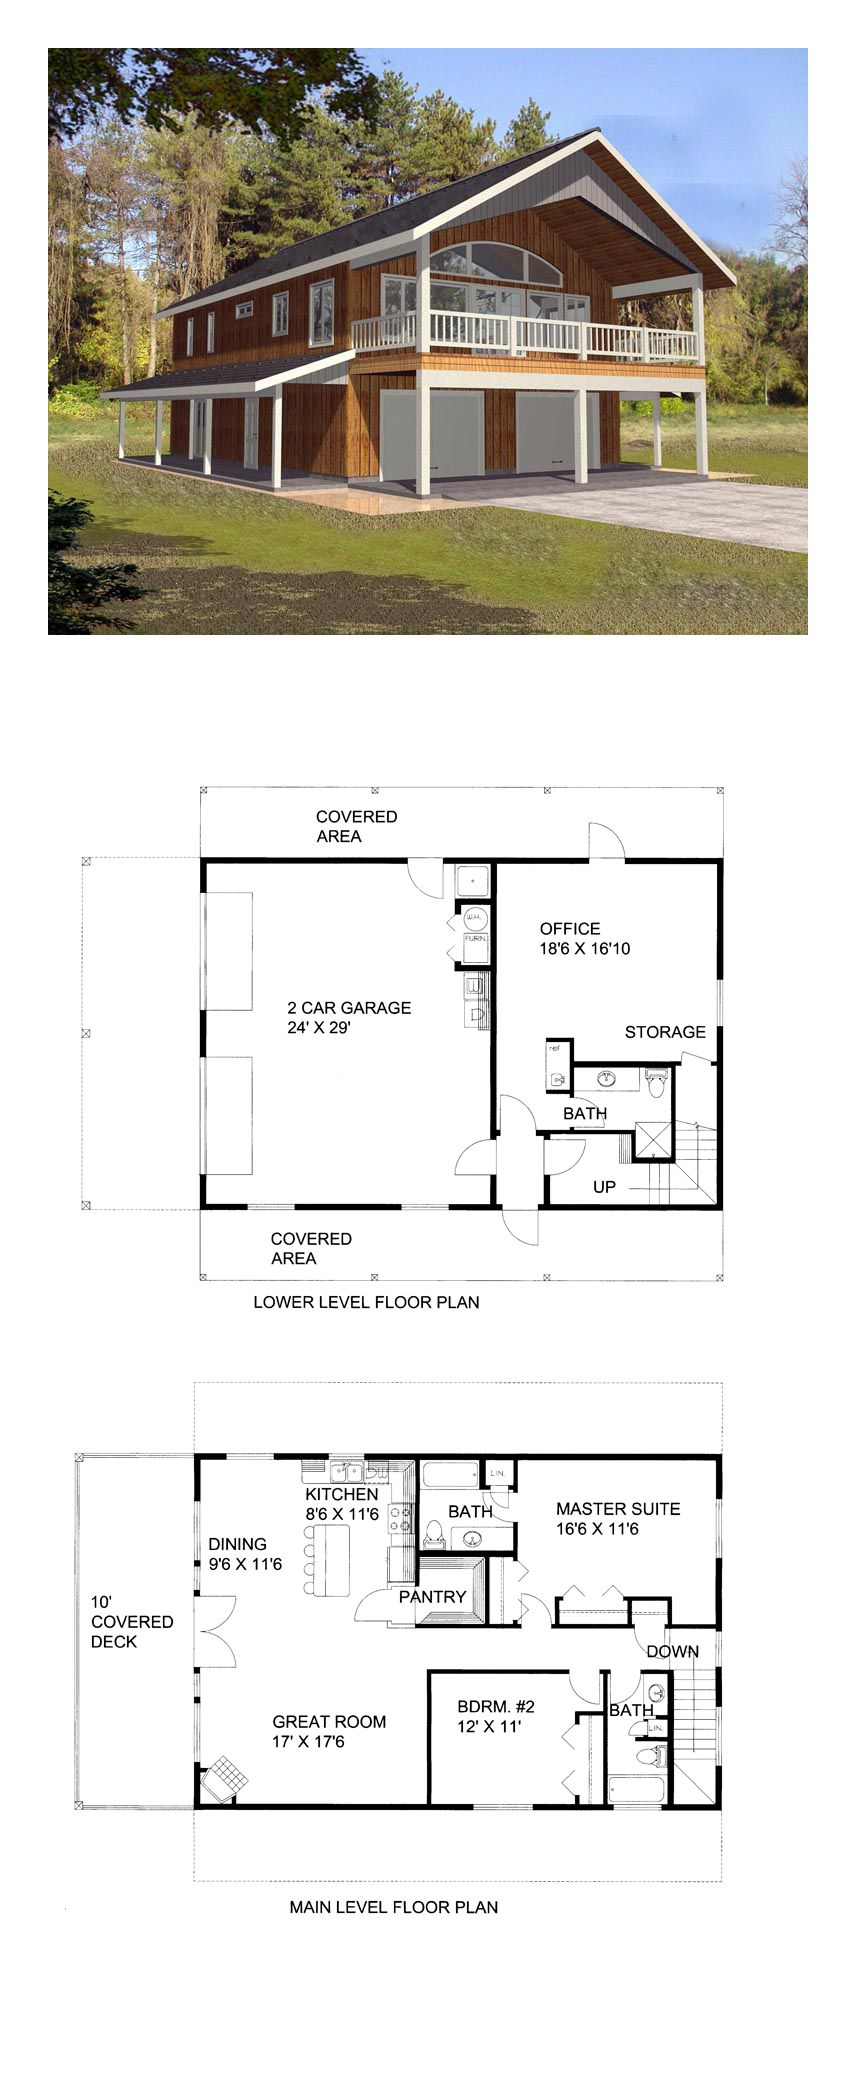 garage apartment plan 85372 total living area 1901 sq For3 Bedroom 2 Bath Garage Apartment Plans